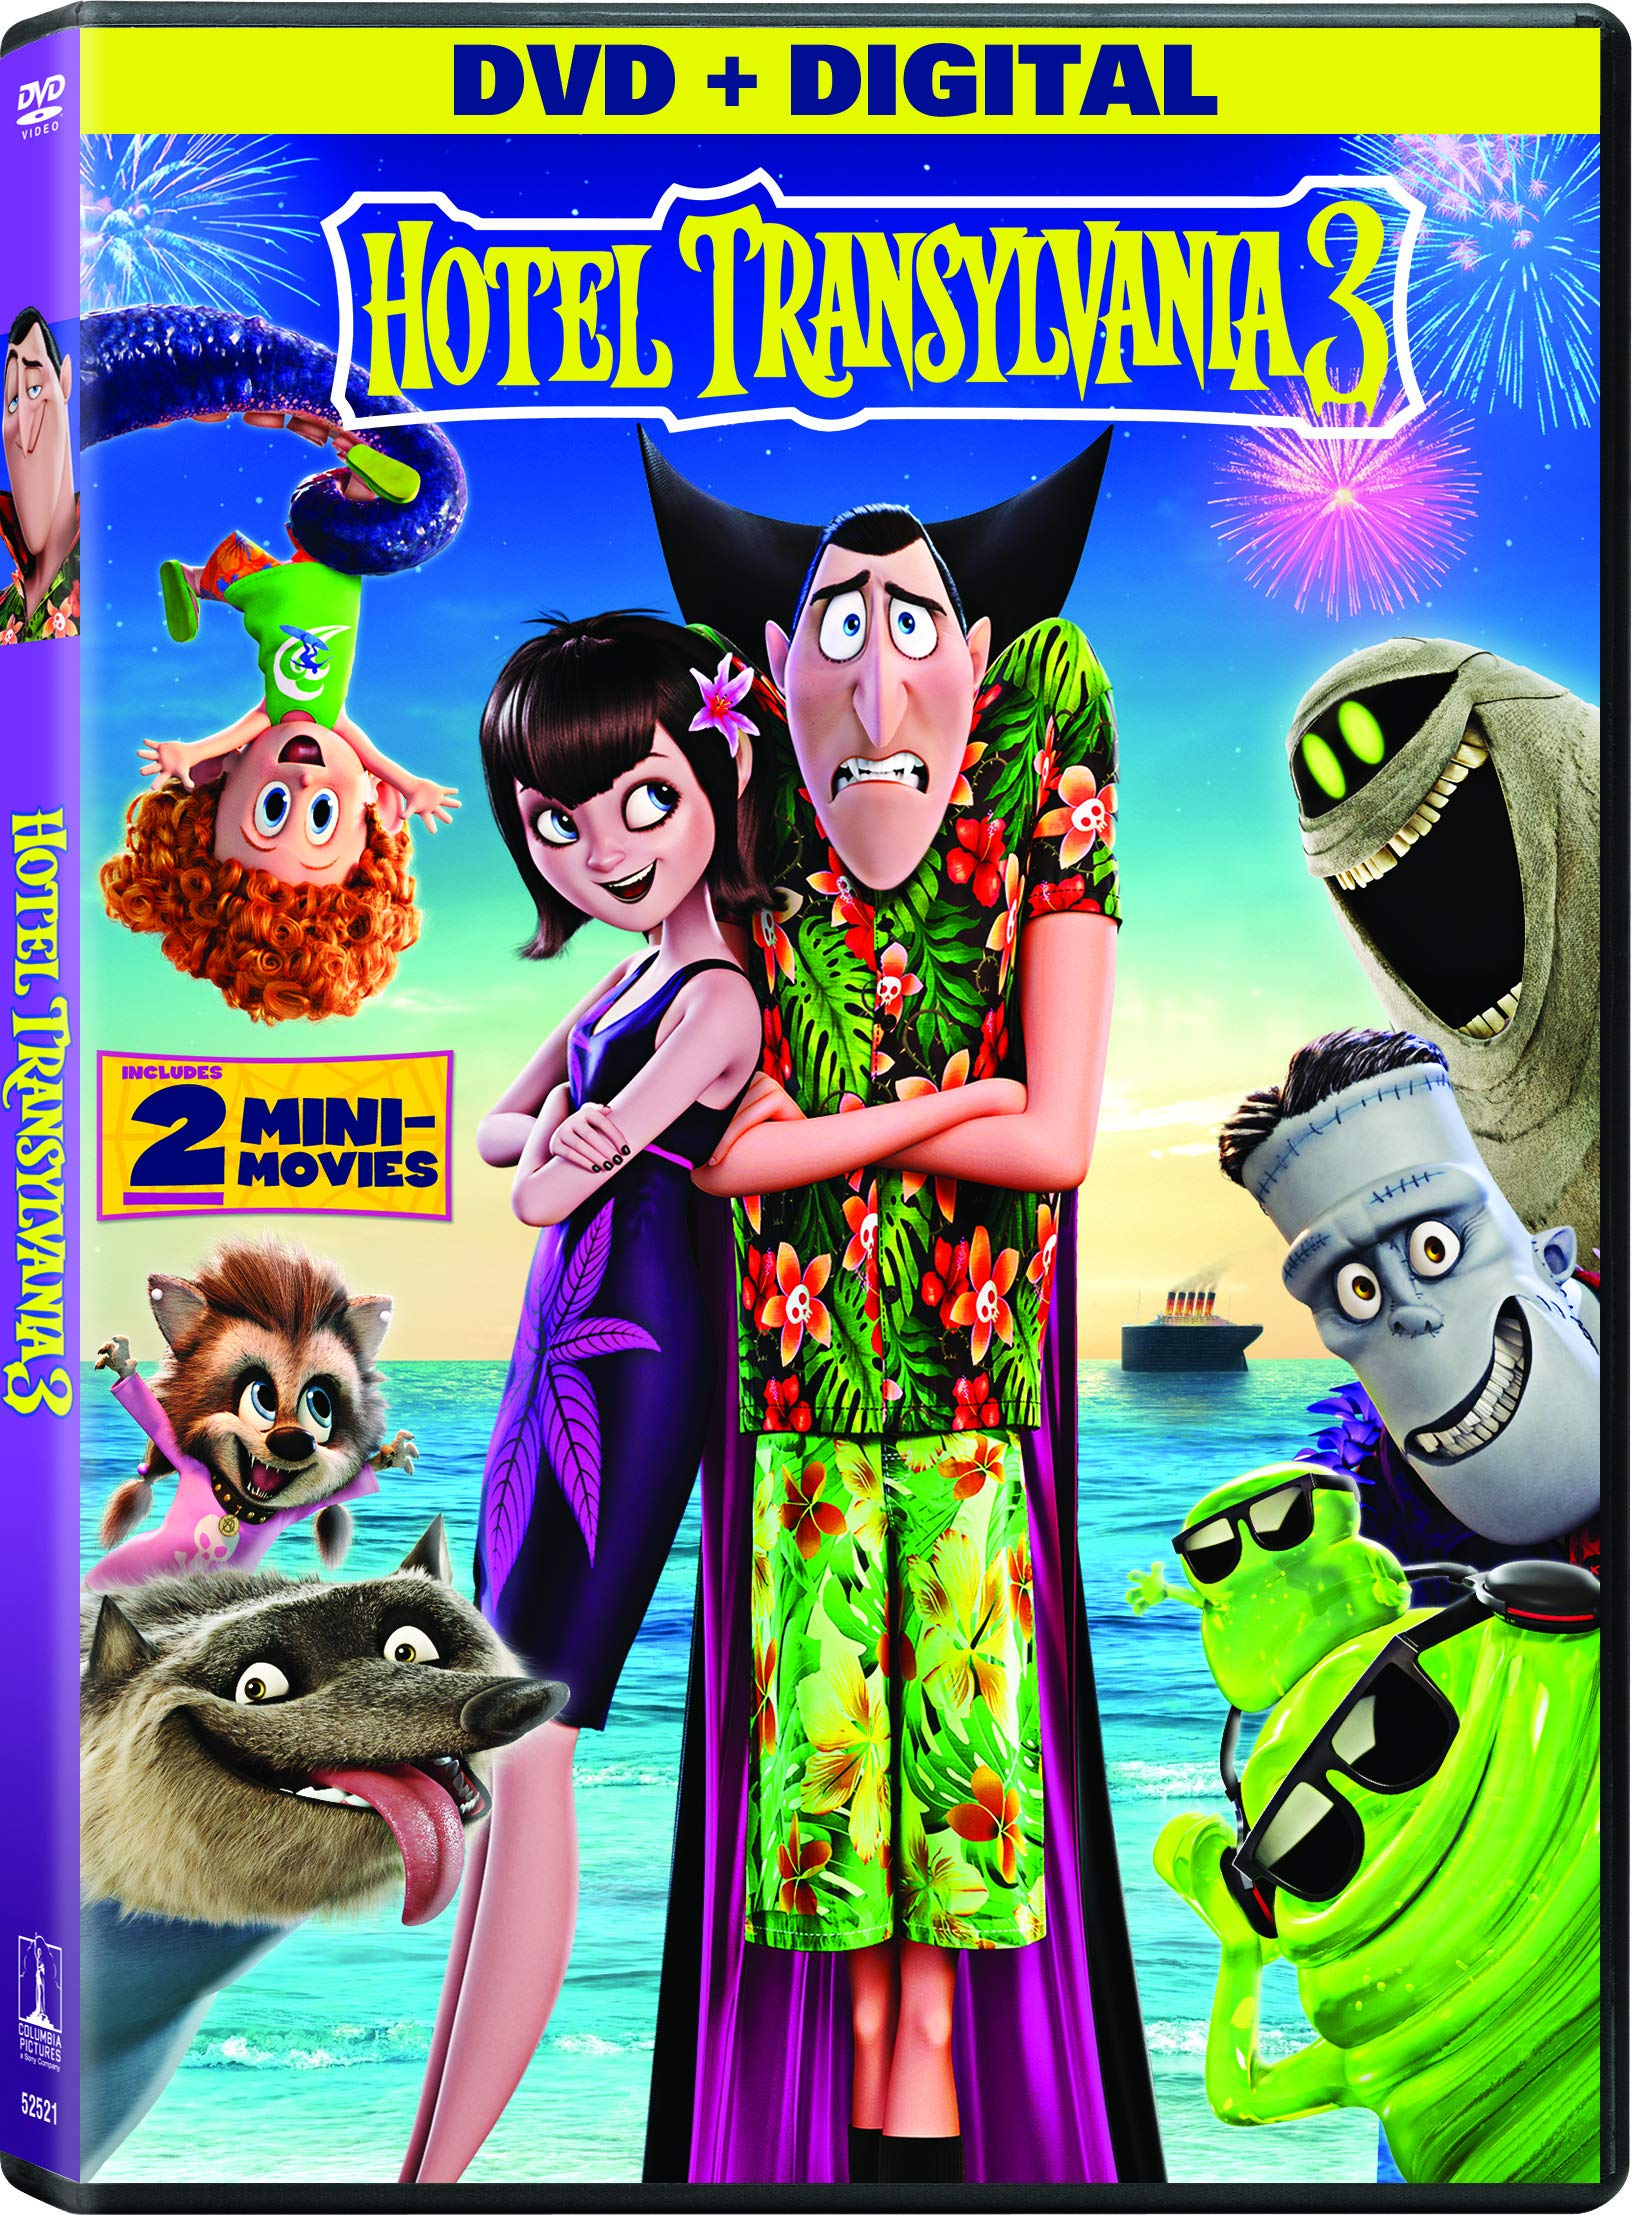 DVD : Hotel Transylvania 3: Summer Vacation (Digital Copy, Widescreen, Dubbed, Subtitled, Dolby)